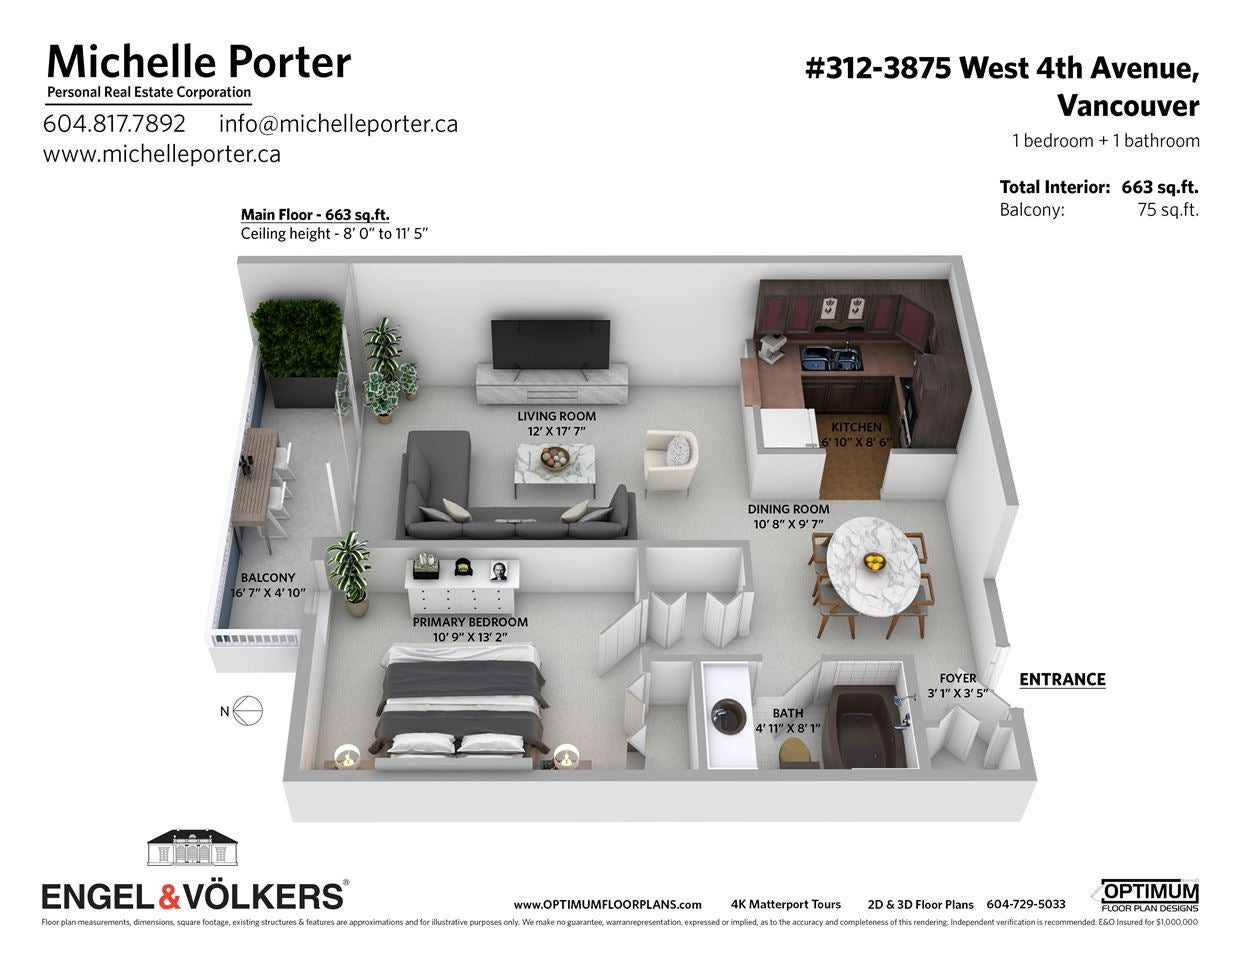 312 3875 W 4TH AVENUE - Point Grey Apartment/Condo for sale, 1 Bedroom (R2574731) - #23